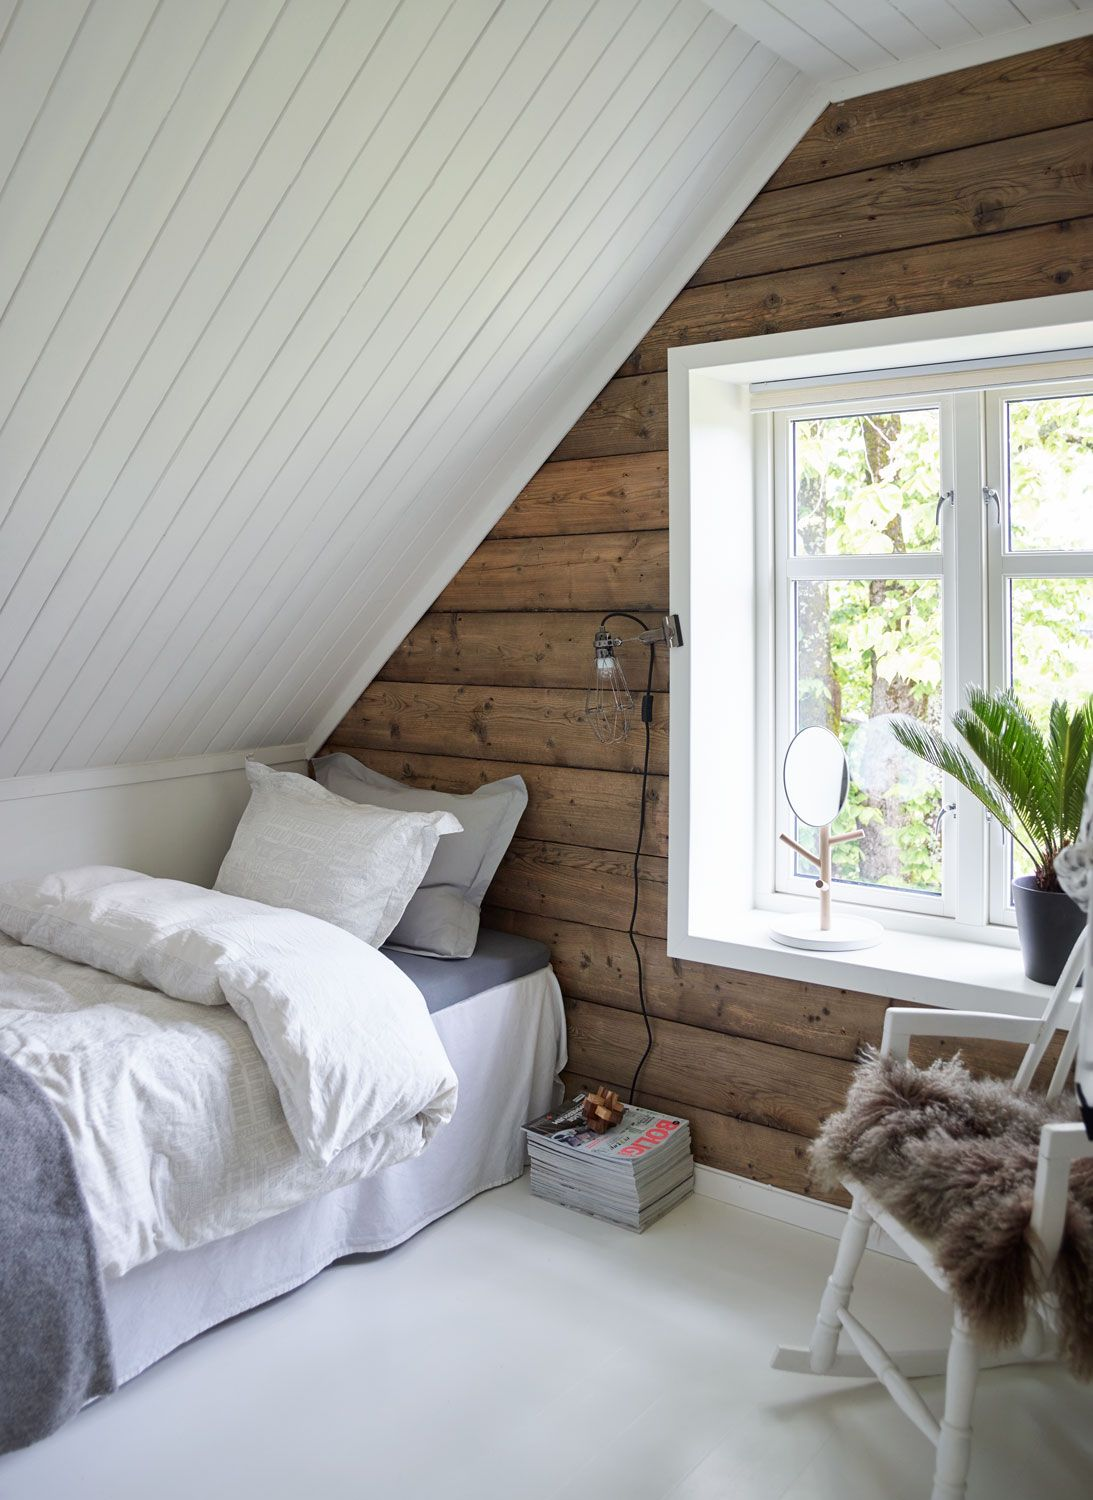 Small Attic Bedroom Twin Bed And Rocking Chair Window Street Facing Wall Is Ship Lap Then Wainscot Attic Bedroom Small Small Attic Room Attic Bedroom Designs